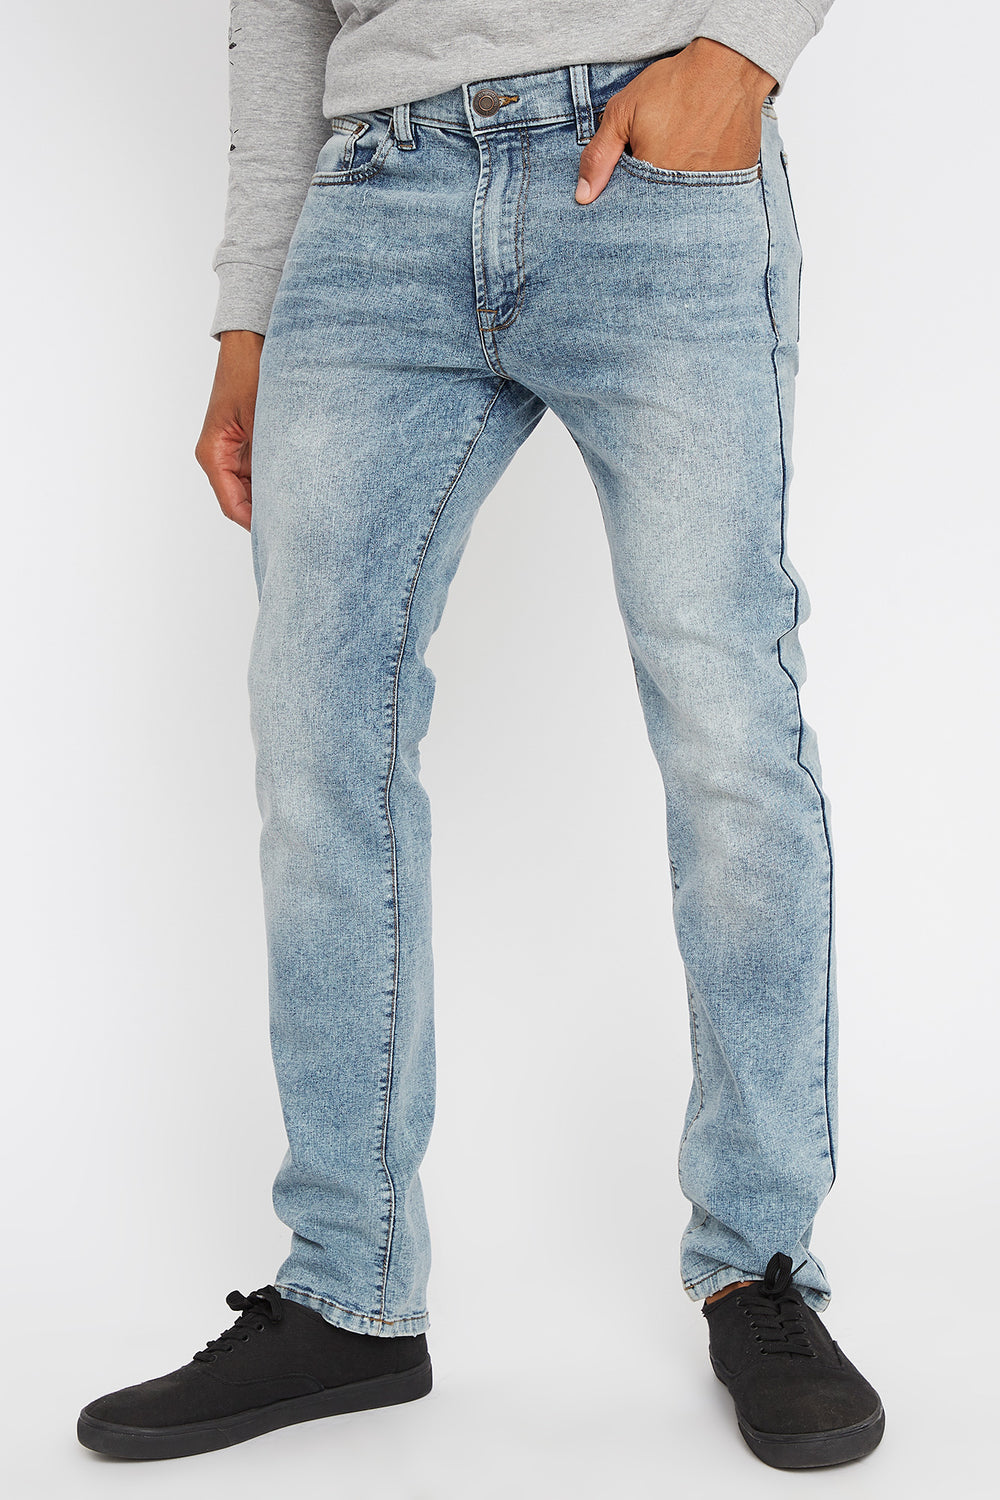 Light Wash Stretch Slim Jean Light Denim Blue